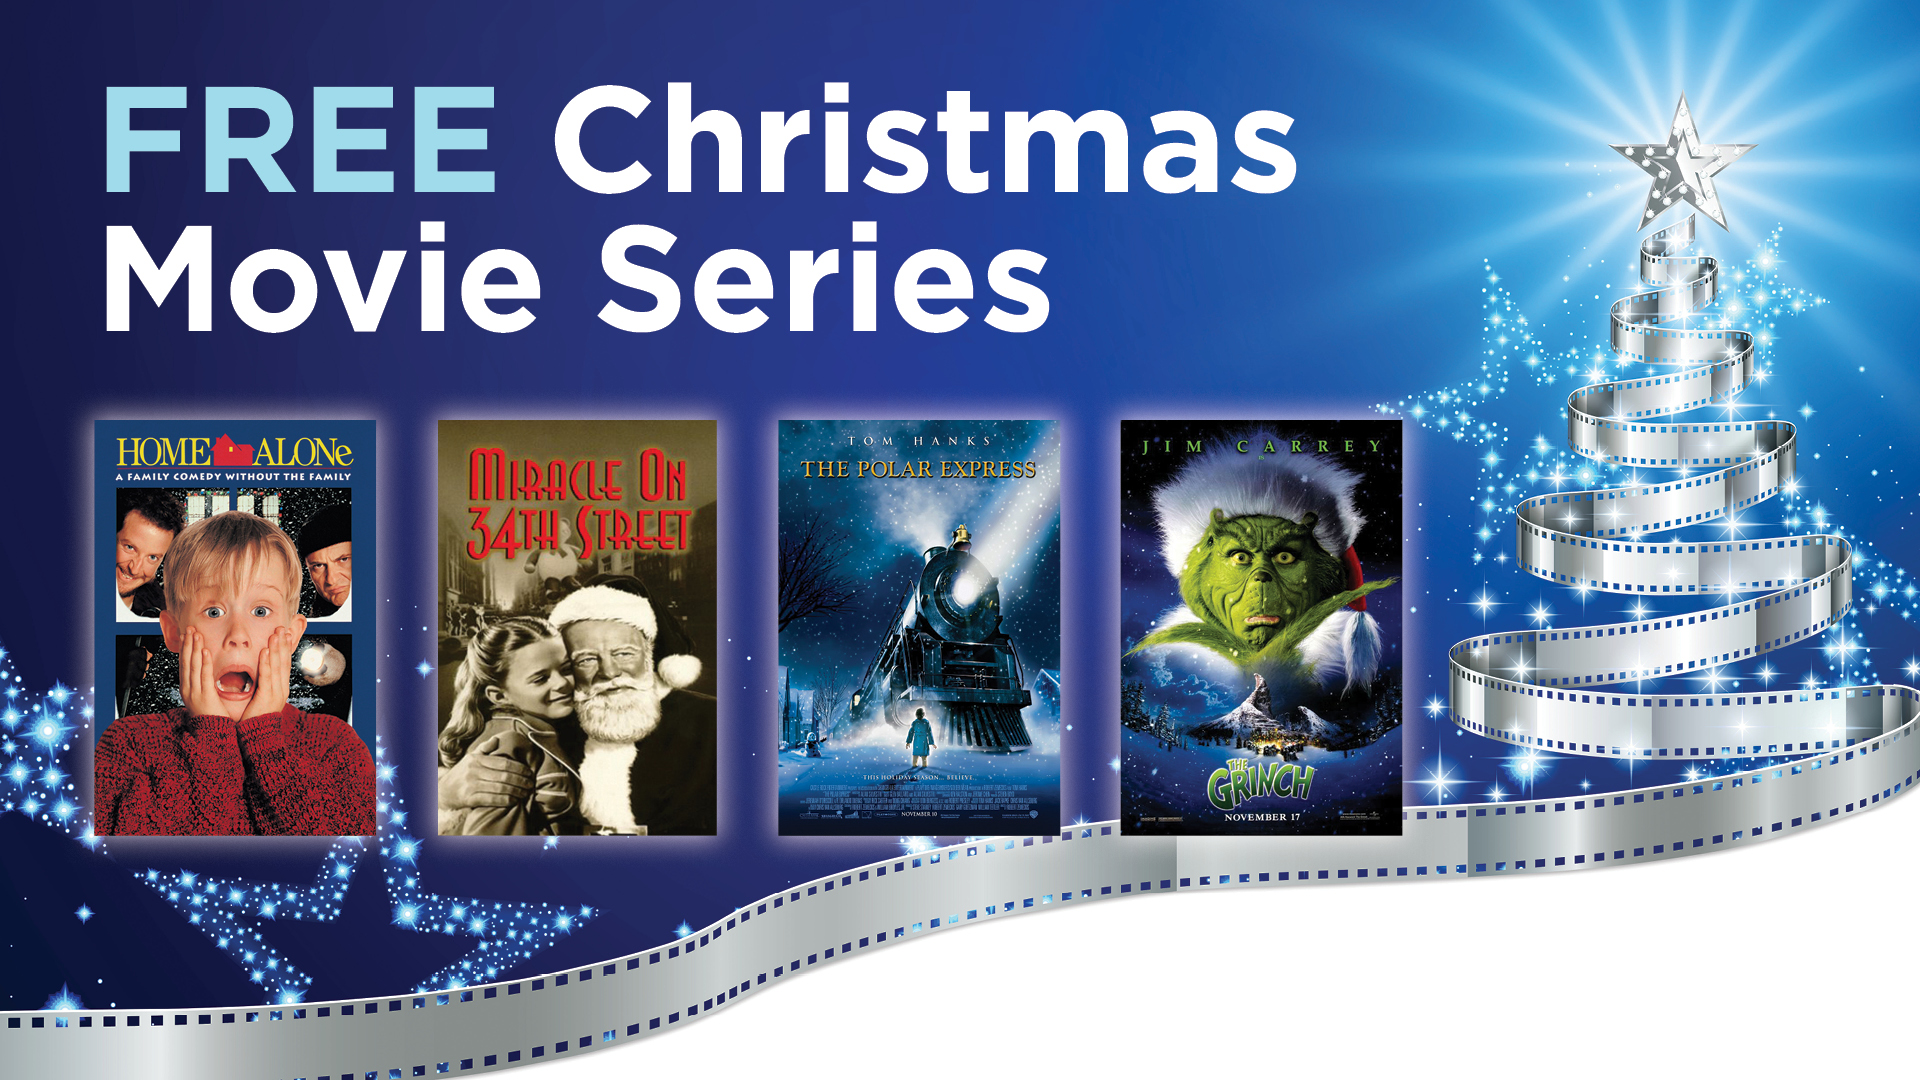 Join us for a classic Christmas movie and support a great cause!